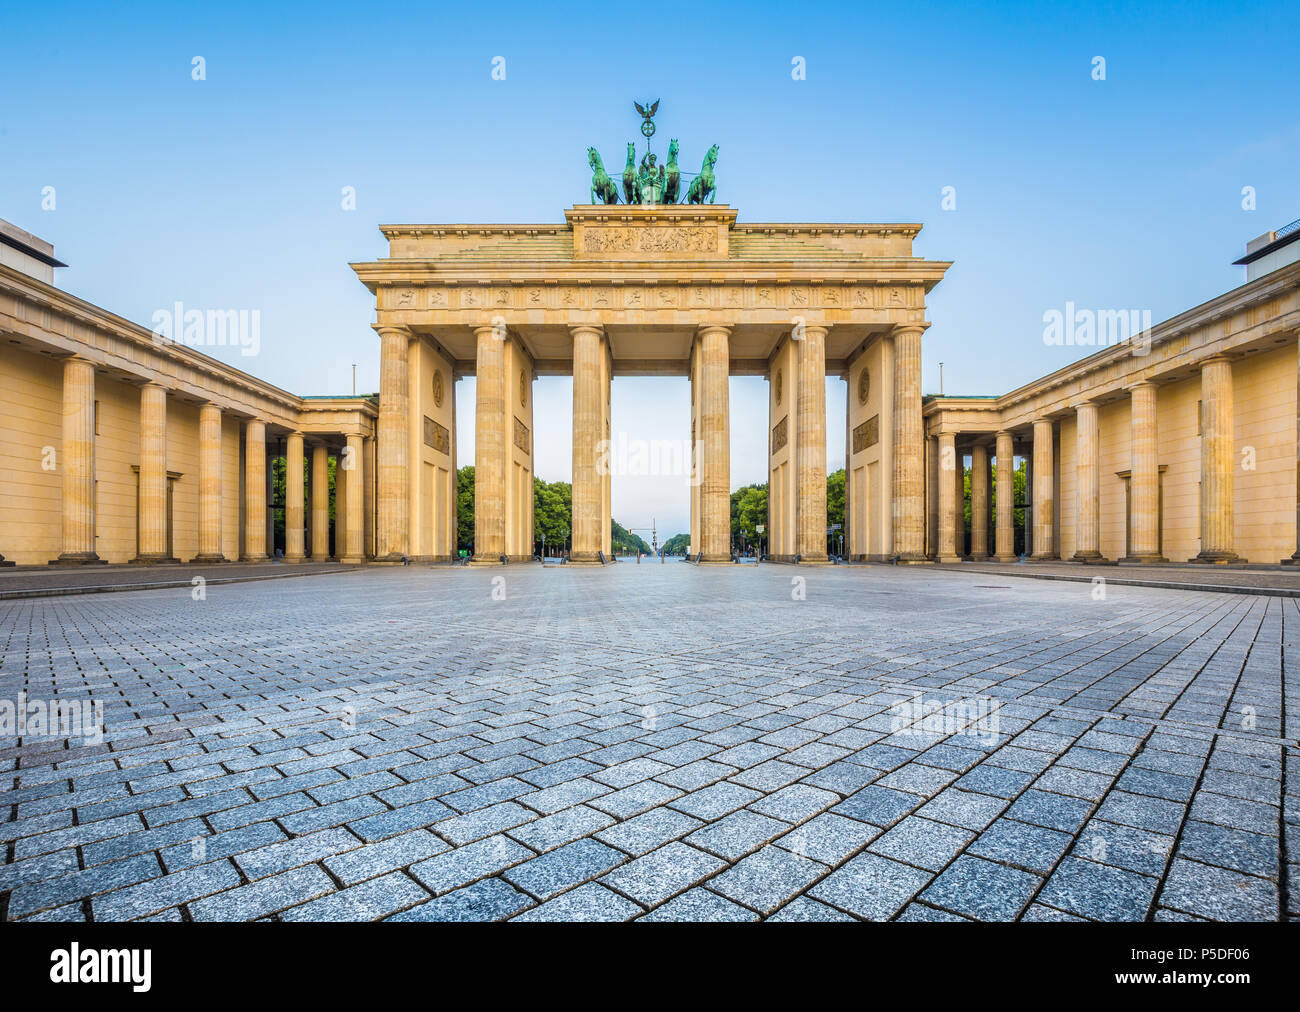 Famous Brandenburger Tor (Brandenburg Gate), one of the best-known landmarks and national symbols of Germany, in beautiful golden morning light at sun - Stock Image